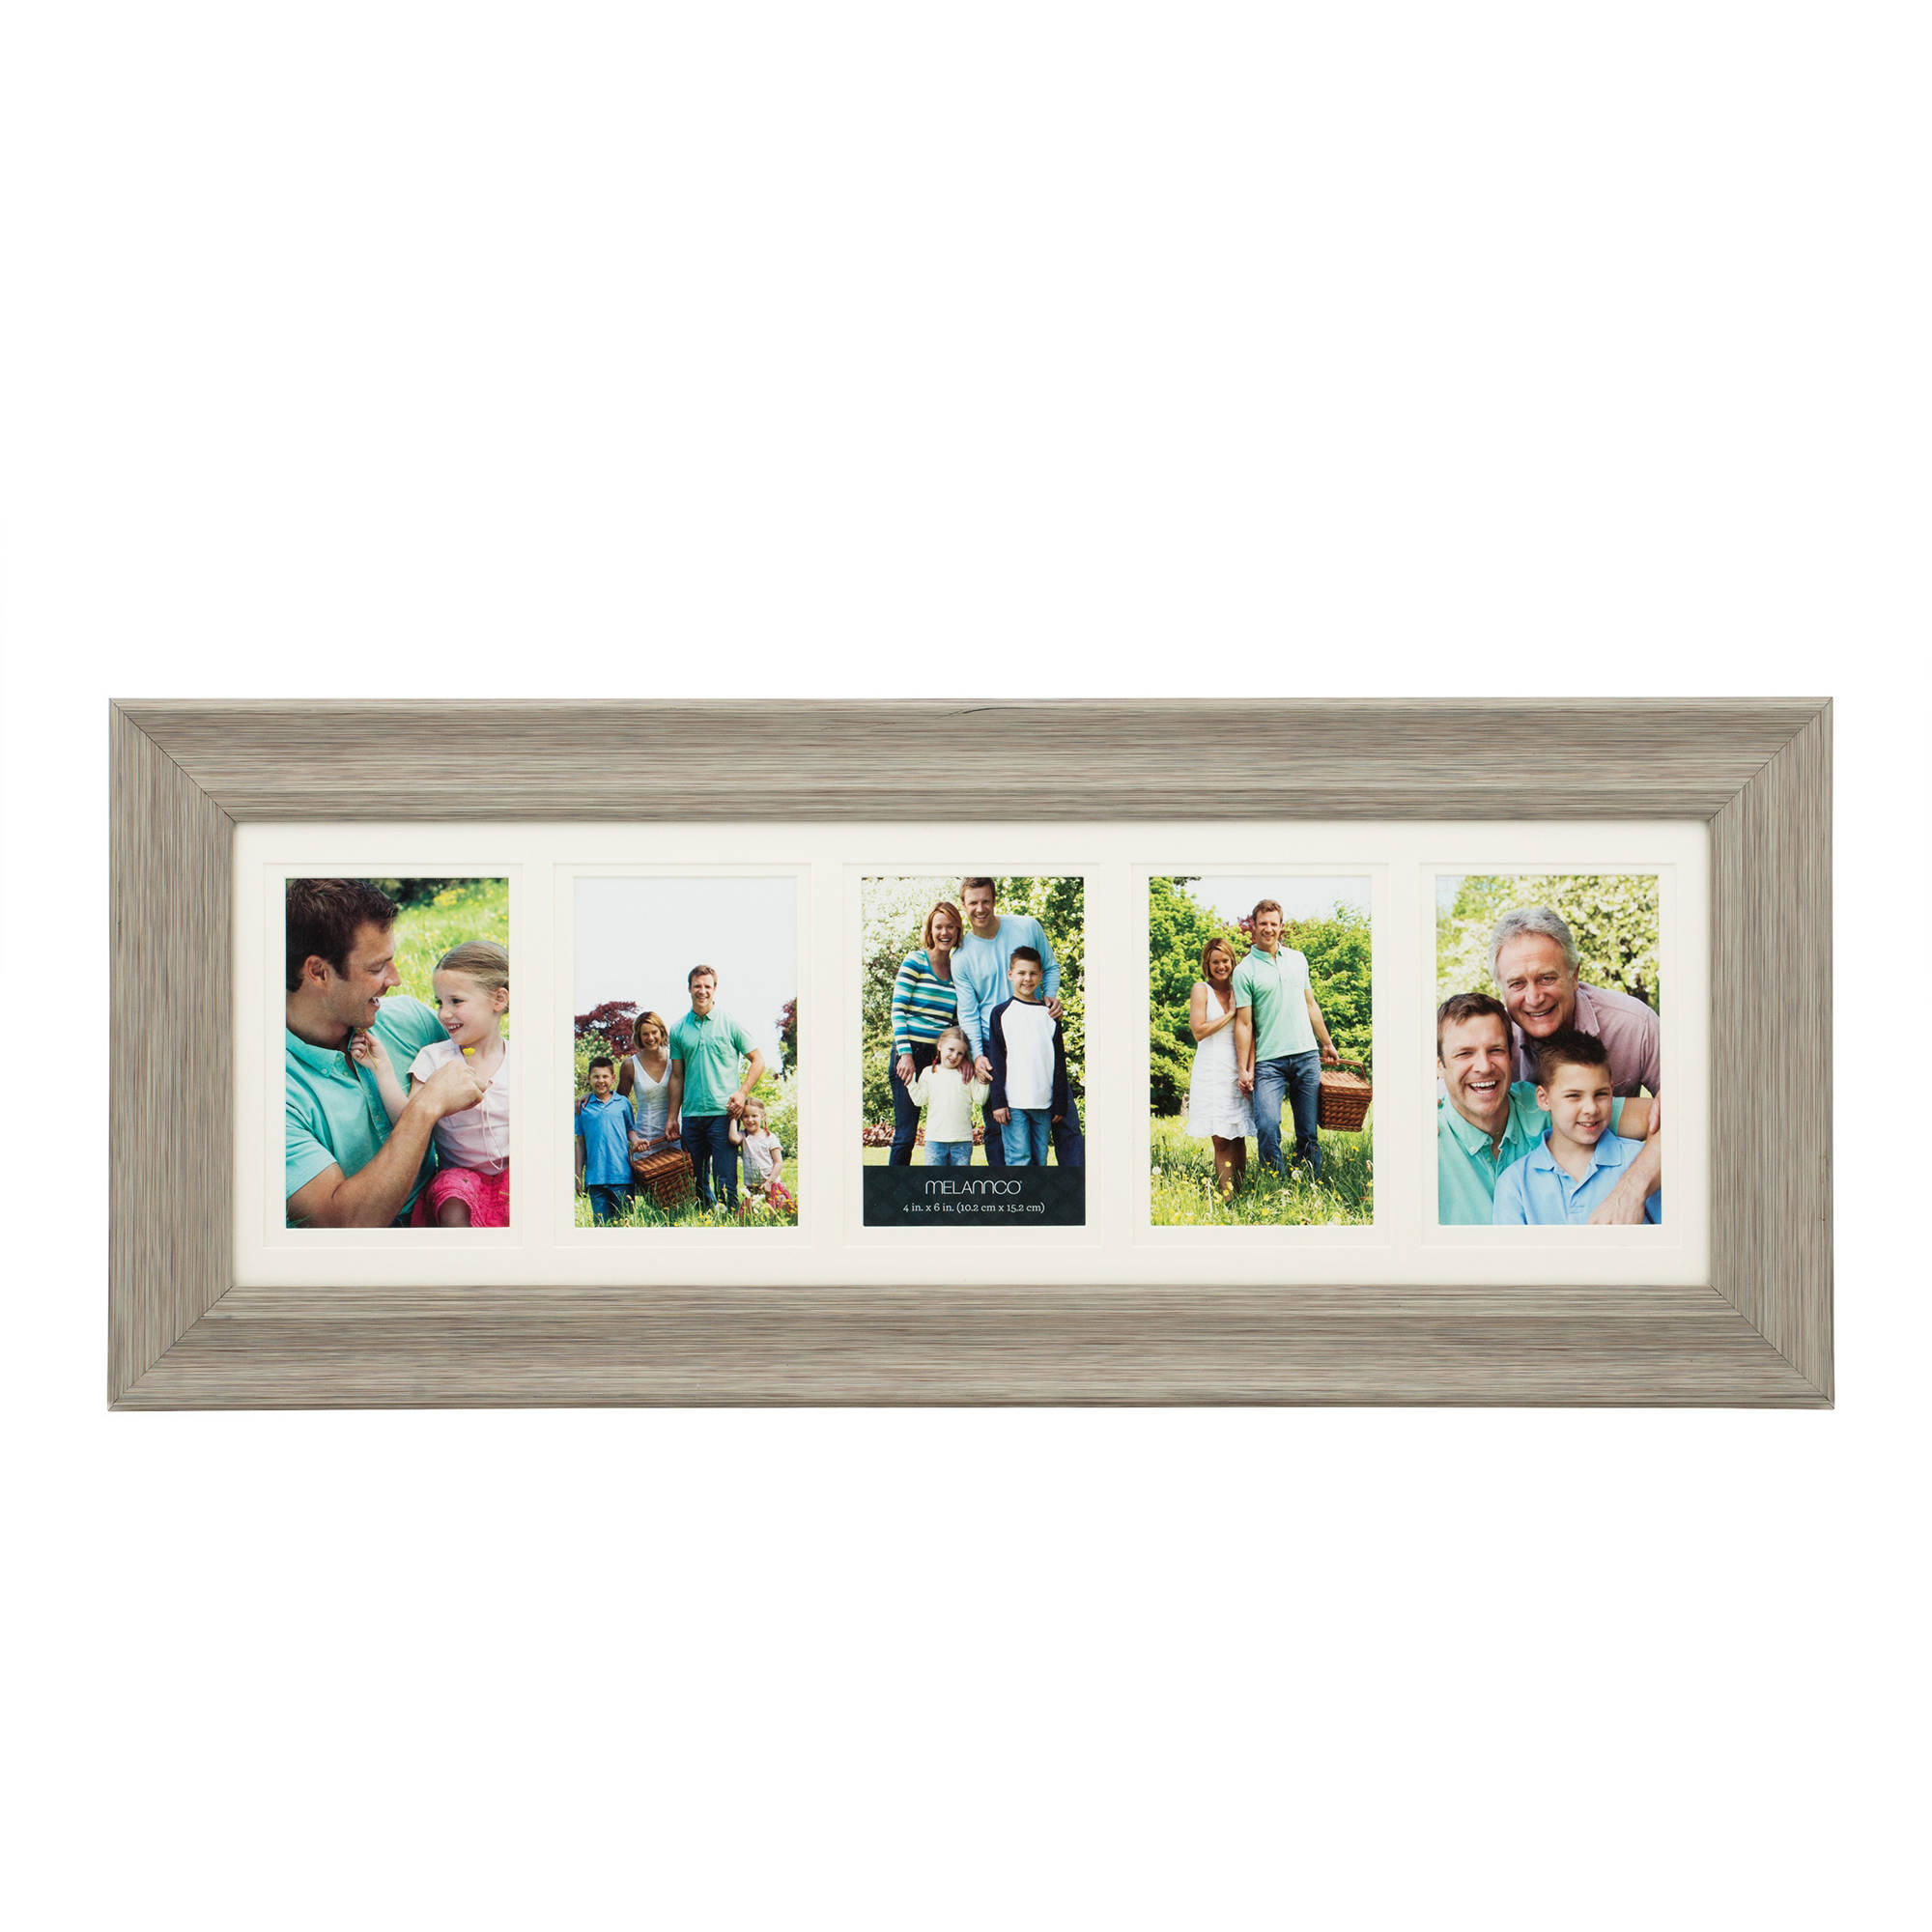 Melannco 5-Opening Double Matted Photo Frame - Walmart.com